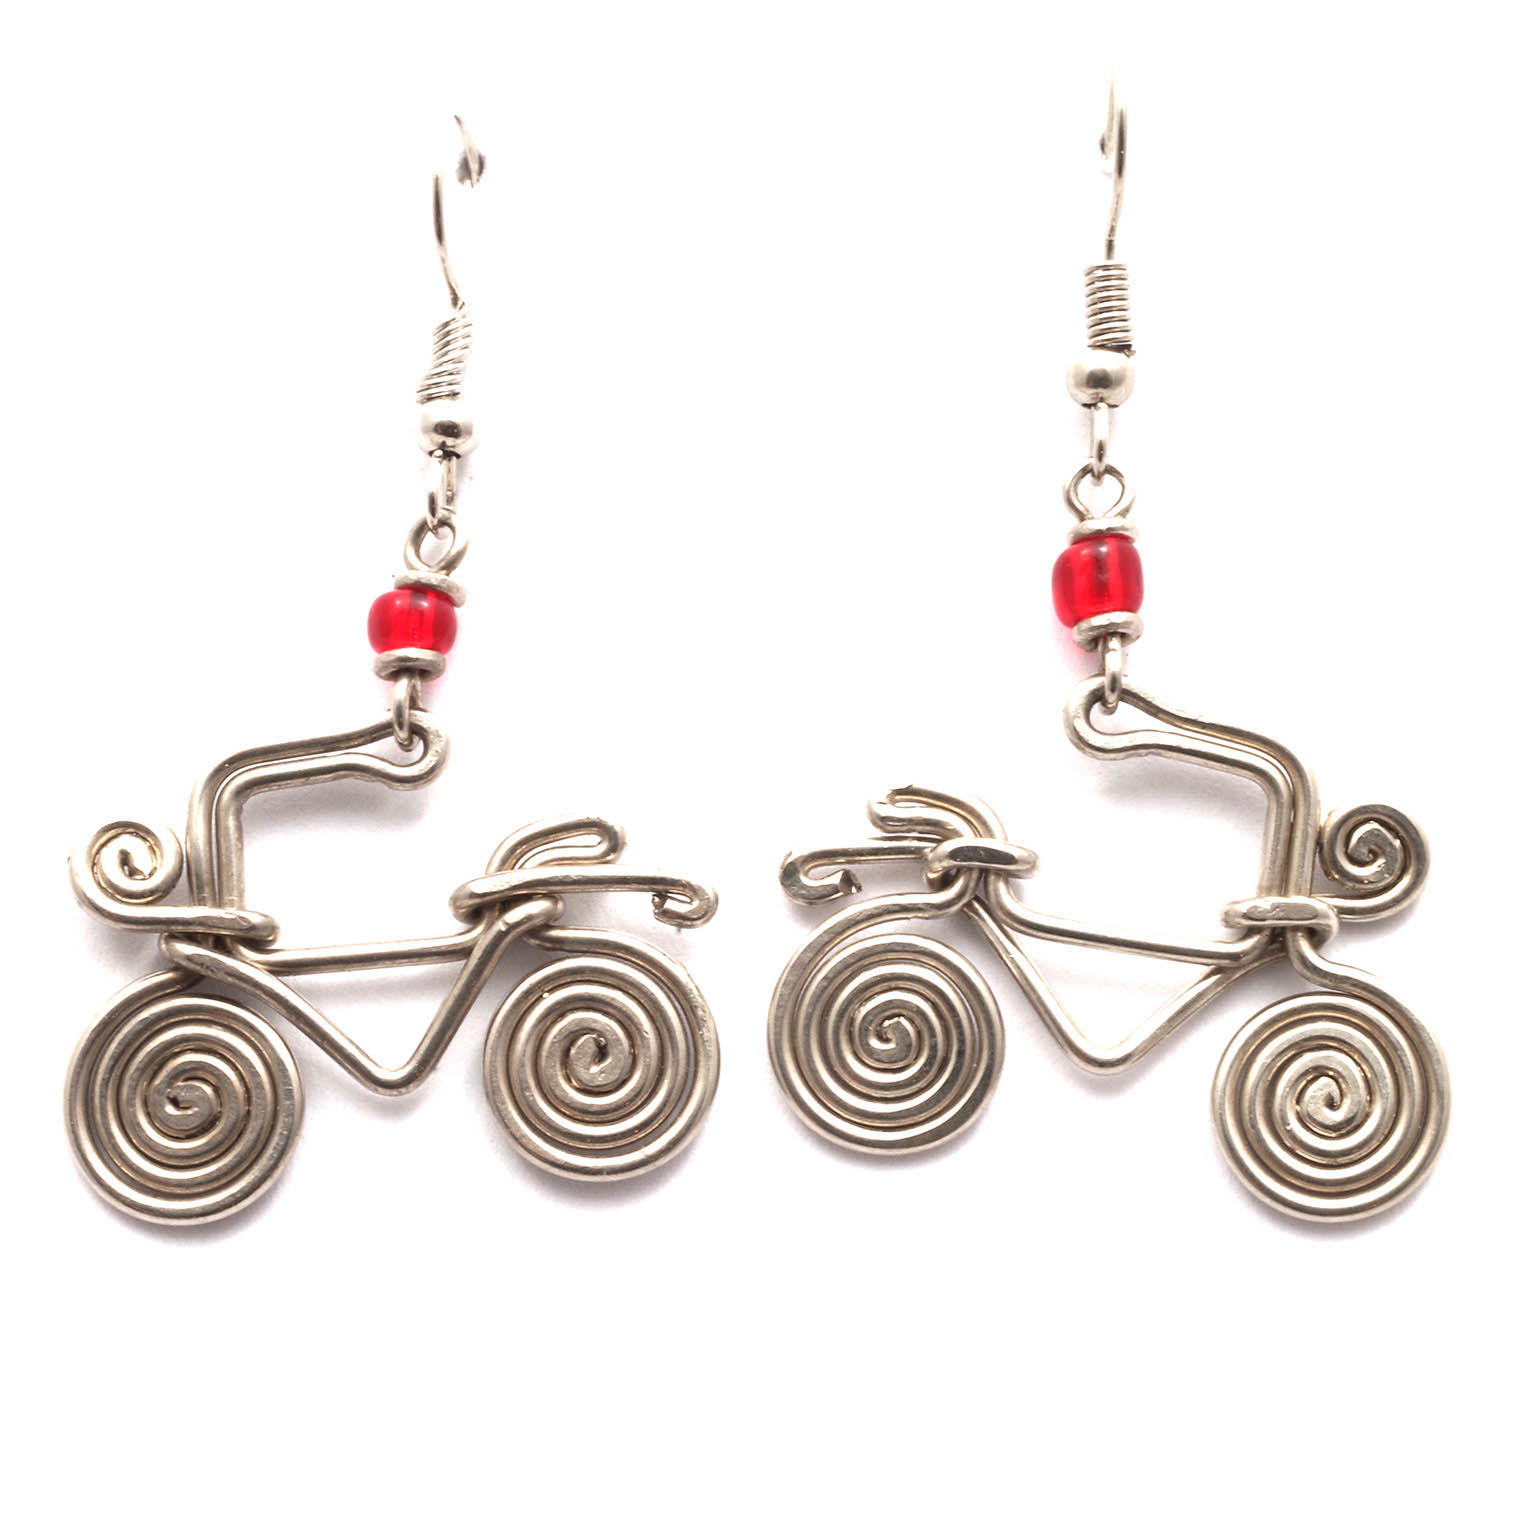 Spiral Bicycle Kenyan Earrings